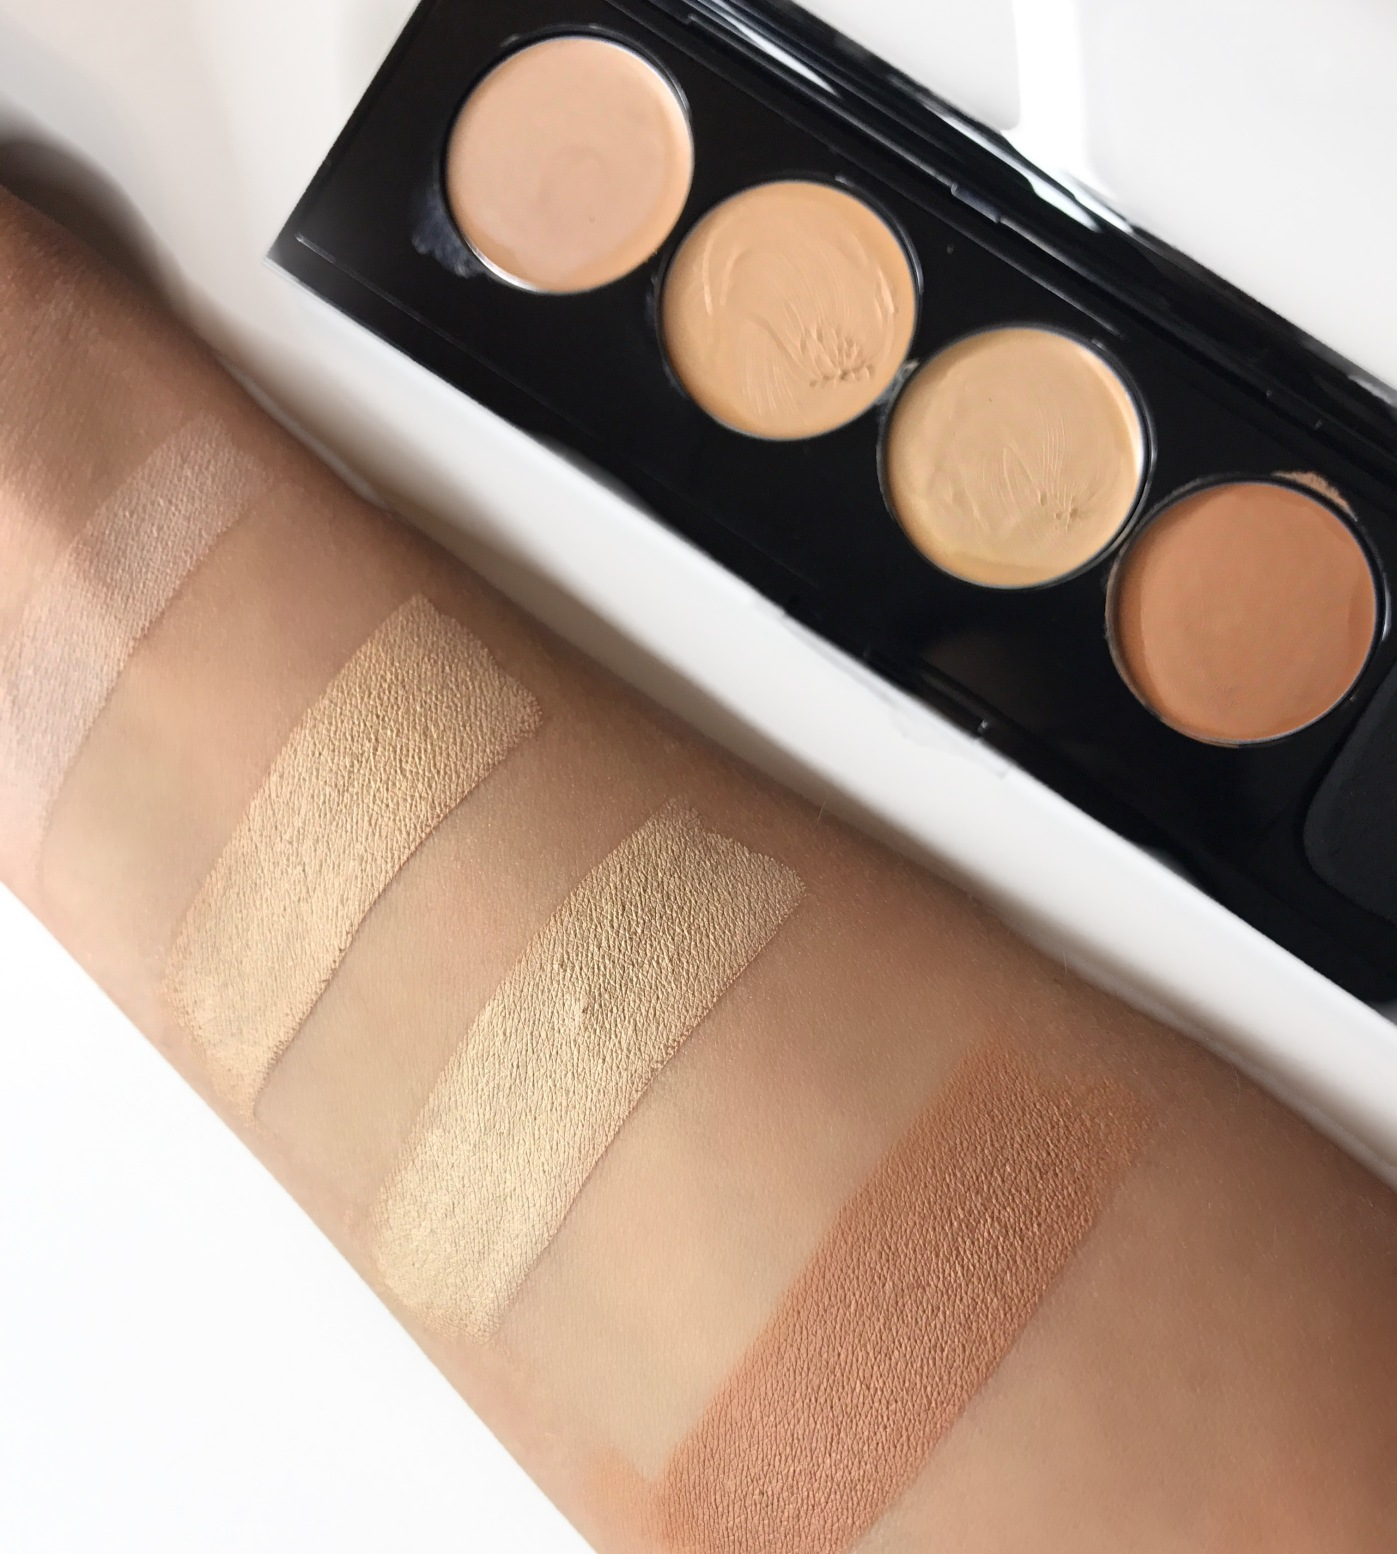 swatches of infallible pro matte total cover conceal and contour kit